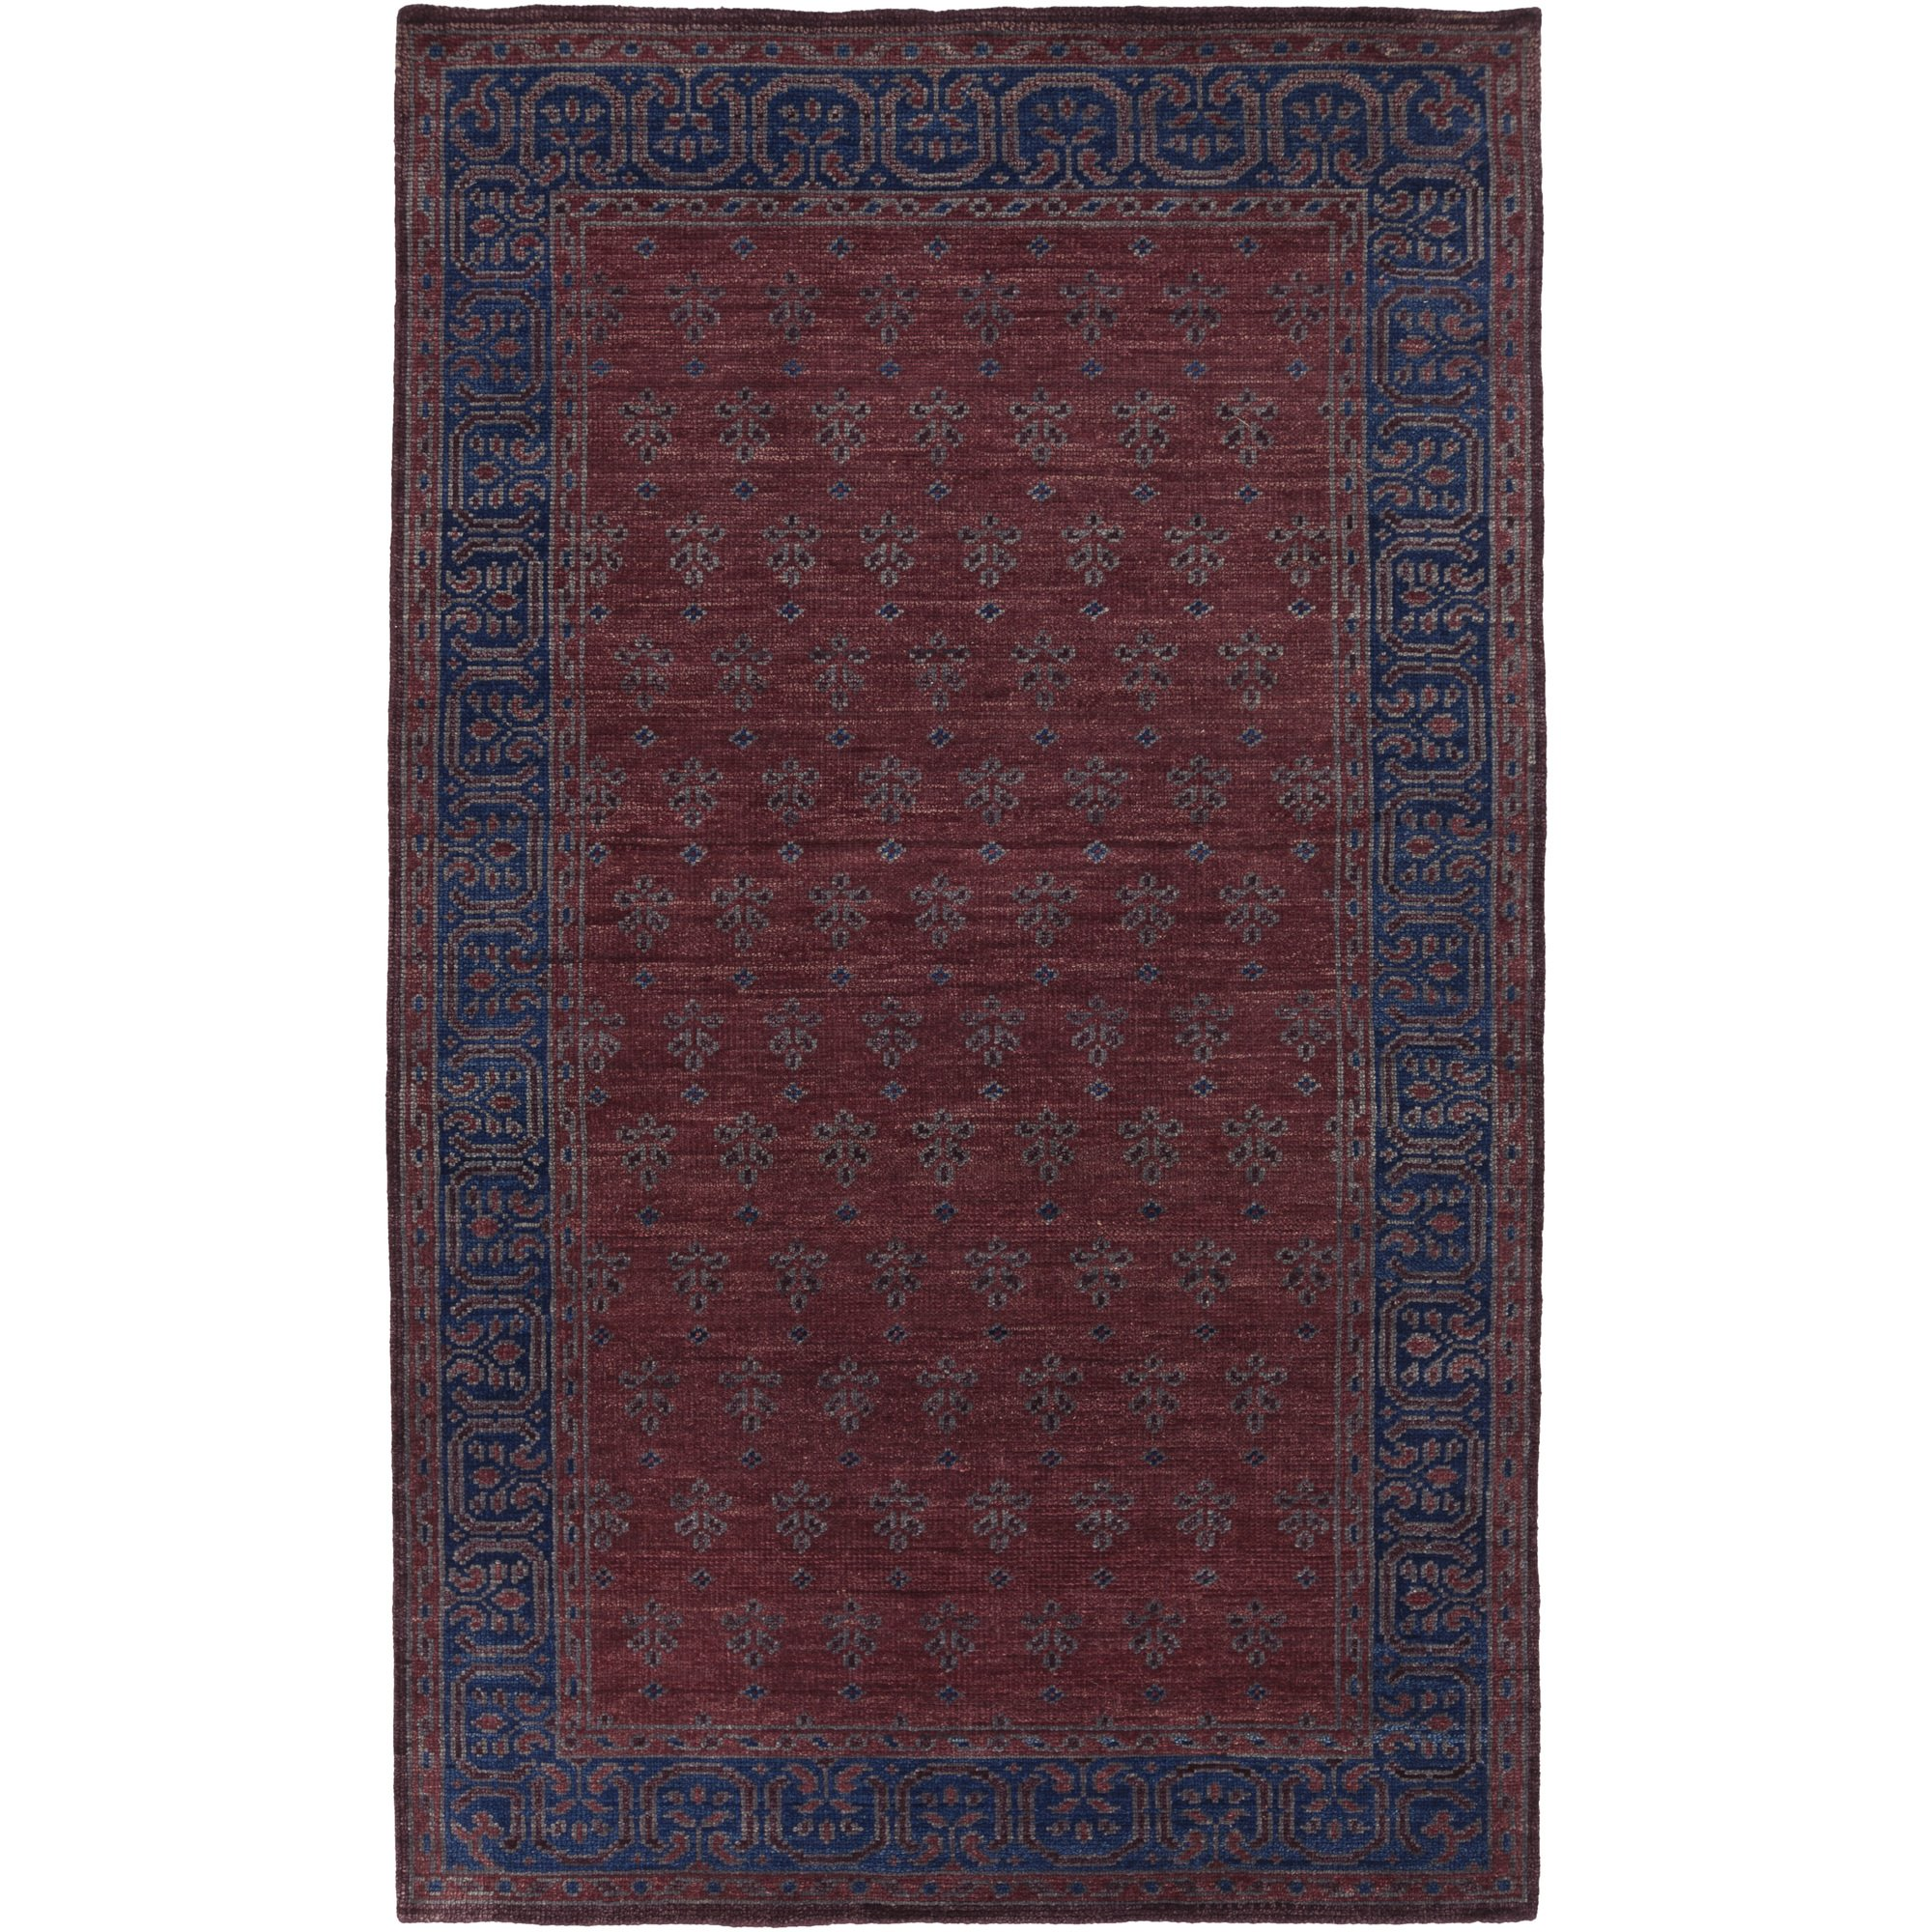 Surya HVN1225-23 Hand Knotted Casual Accent Rug, 2 by 3-Feet, Mauve/Eggplant/Cobalt